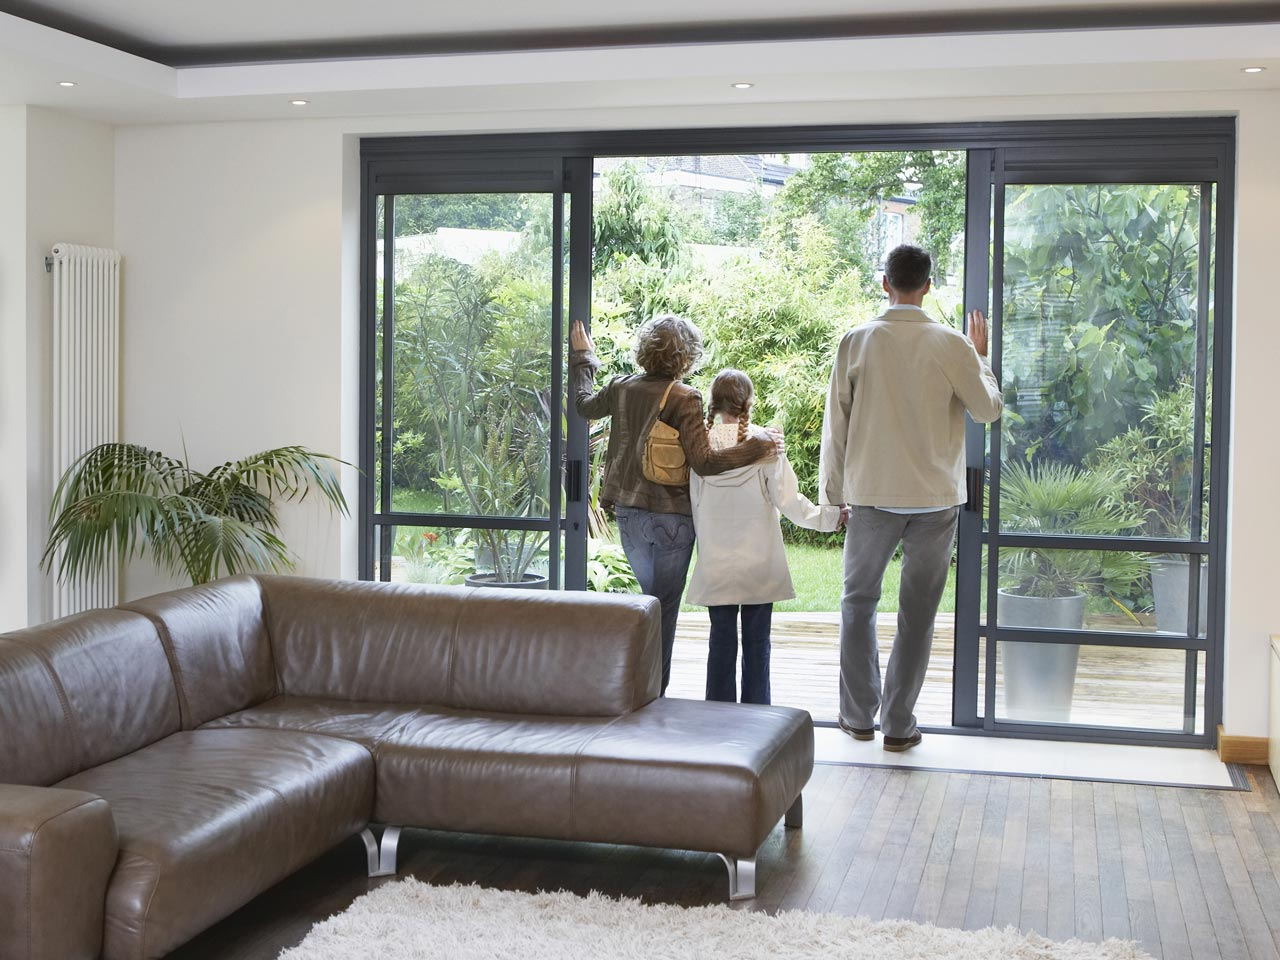 National Mortgage Company Selects Avaya to Help Americans Realize the Dream of Home Ownership